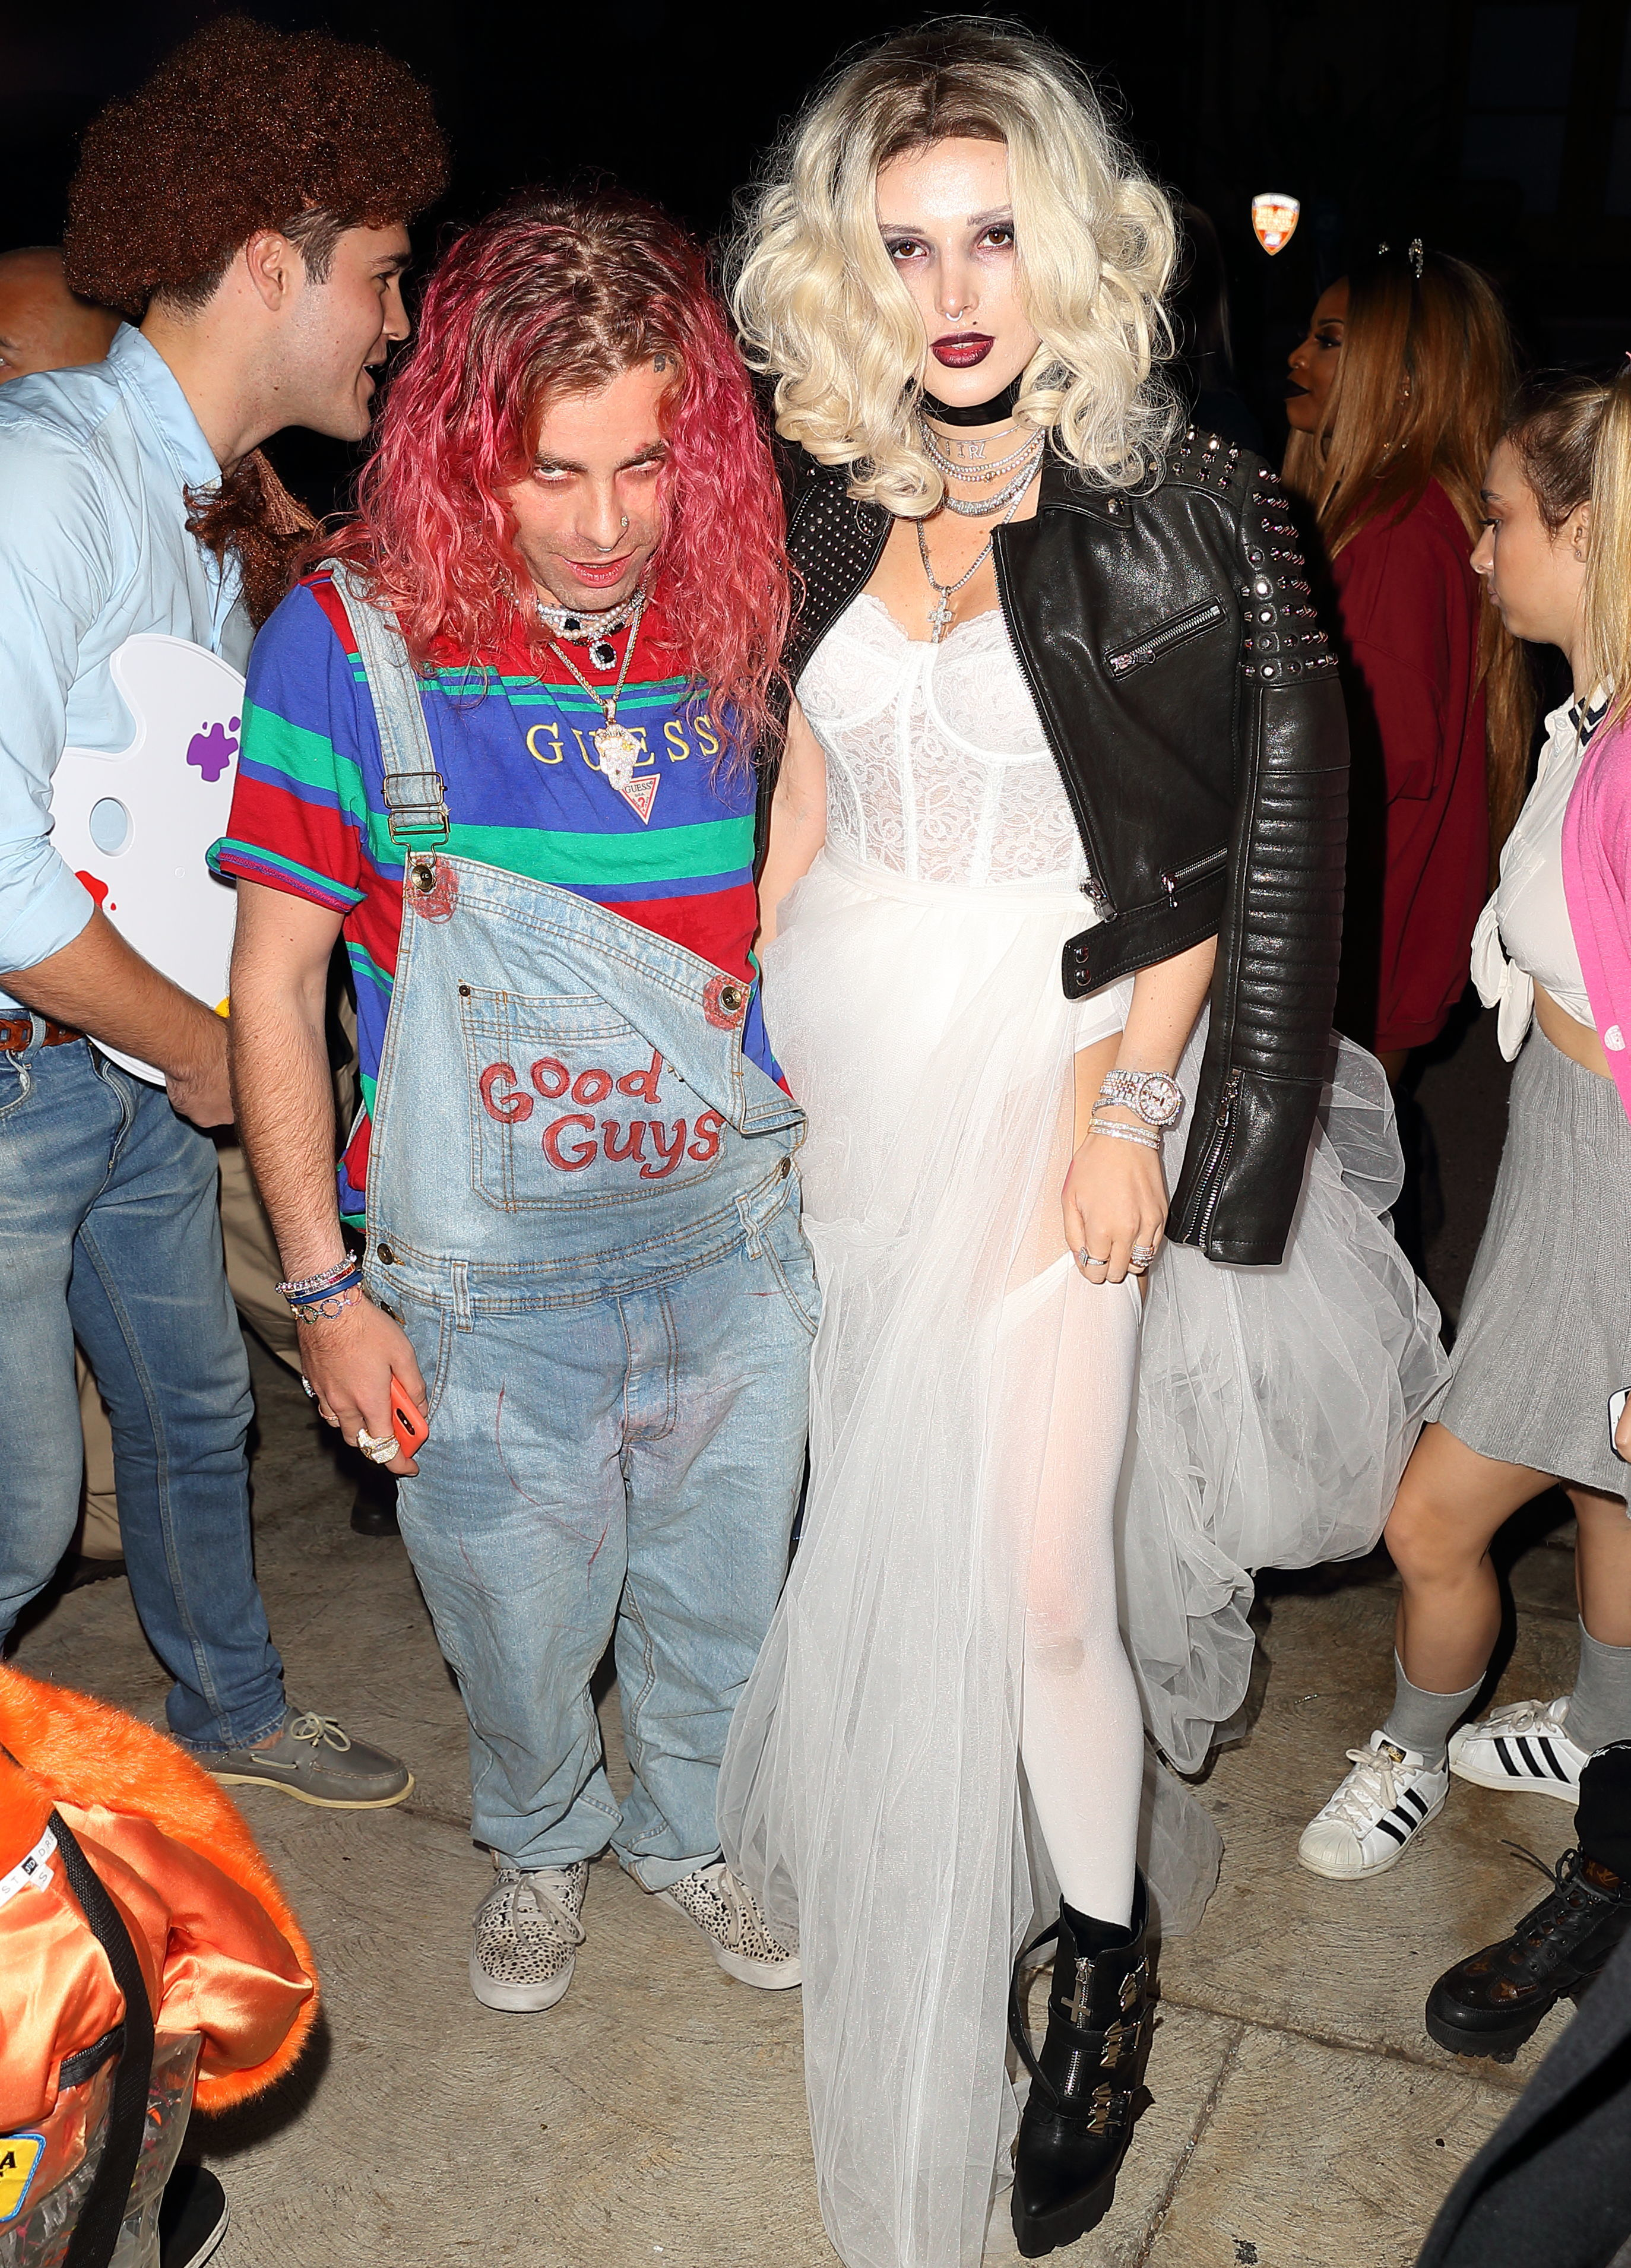 Bella Thorne and Mod sun arrive to halloween party dressed as Tiffany and Chucky from Bride of Chucky in Los Angeles on Oct. 30, 2018.